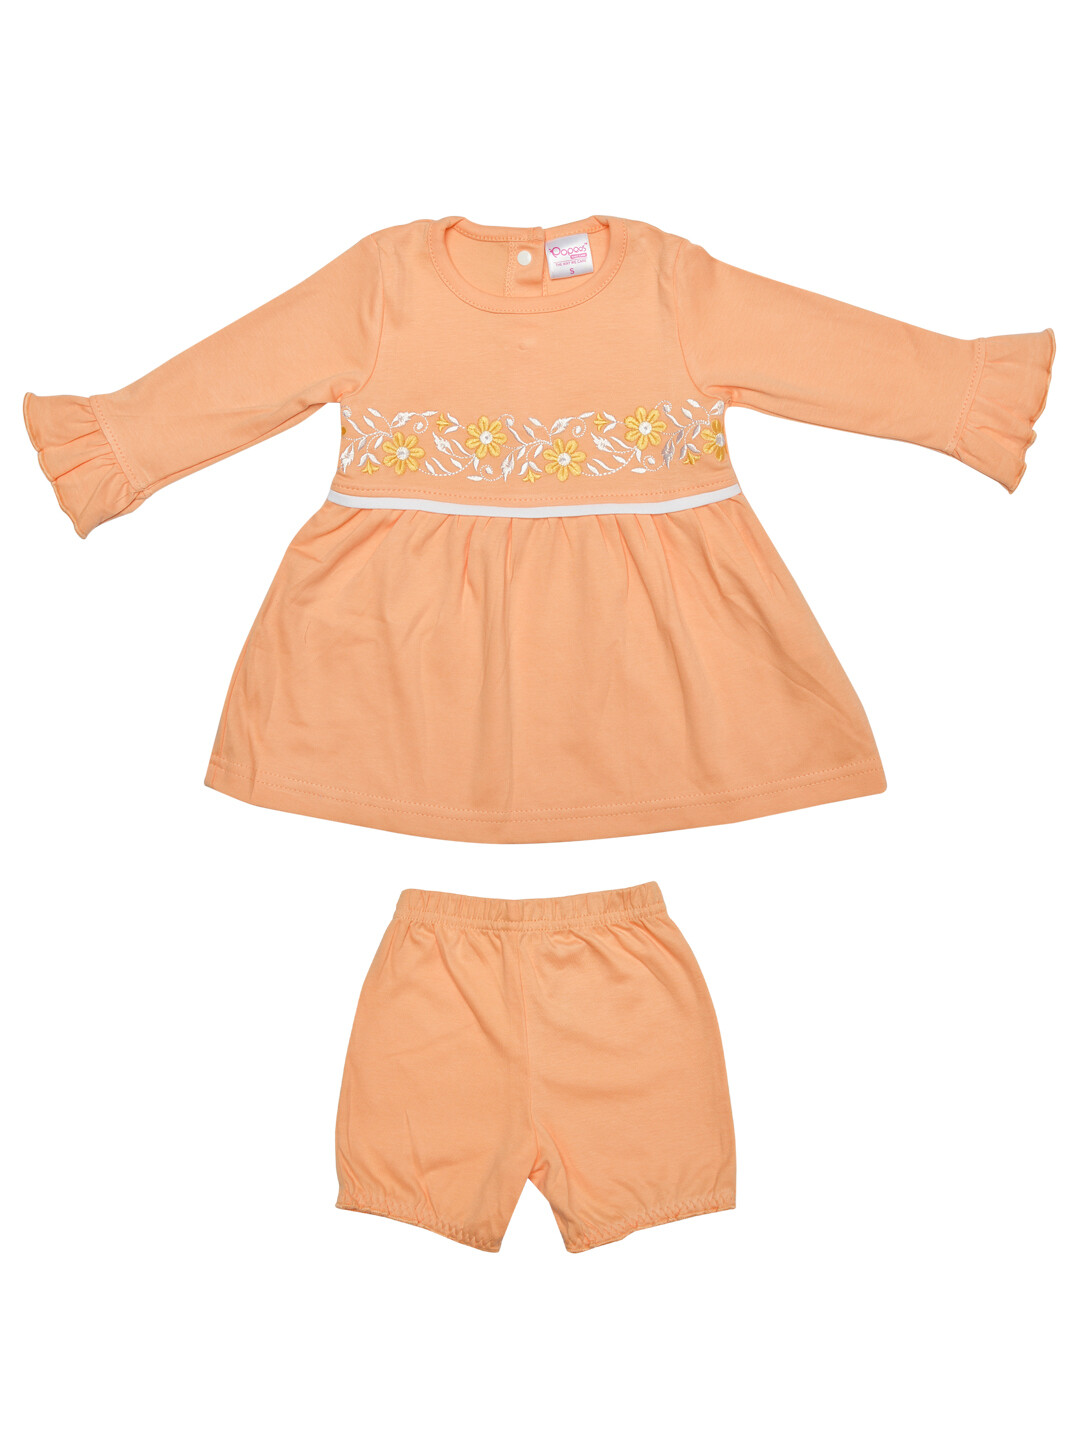 Lorena Apricot Ice Full Sleeves Flower Embroidered Top with Shorts for Girls M (6-12 Months)